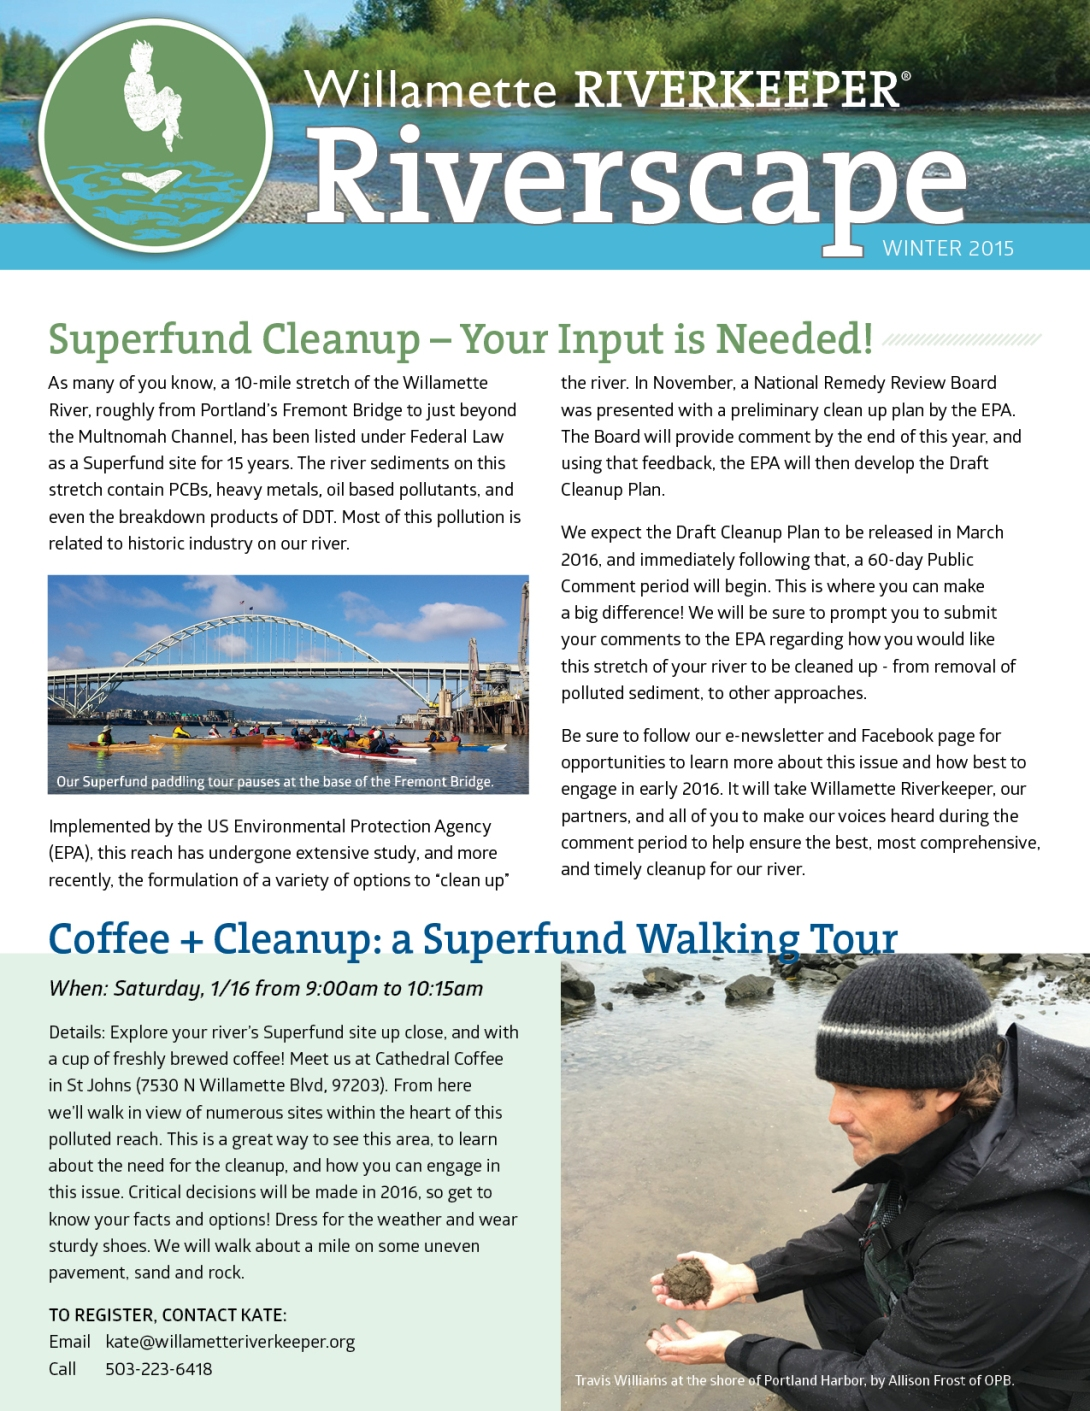 Willamette Riverkeeper